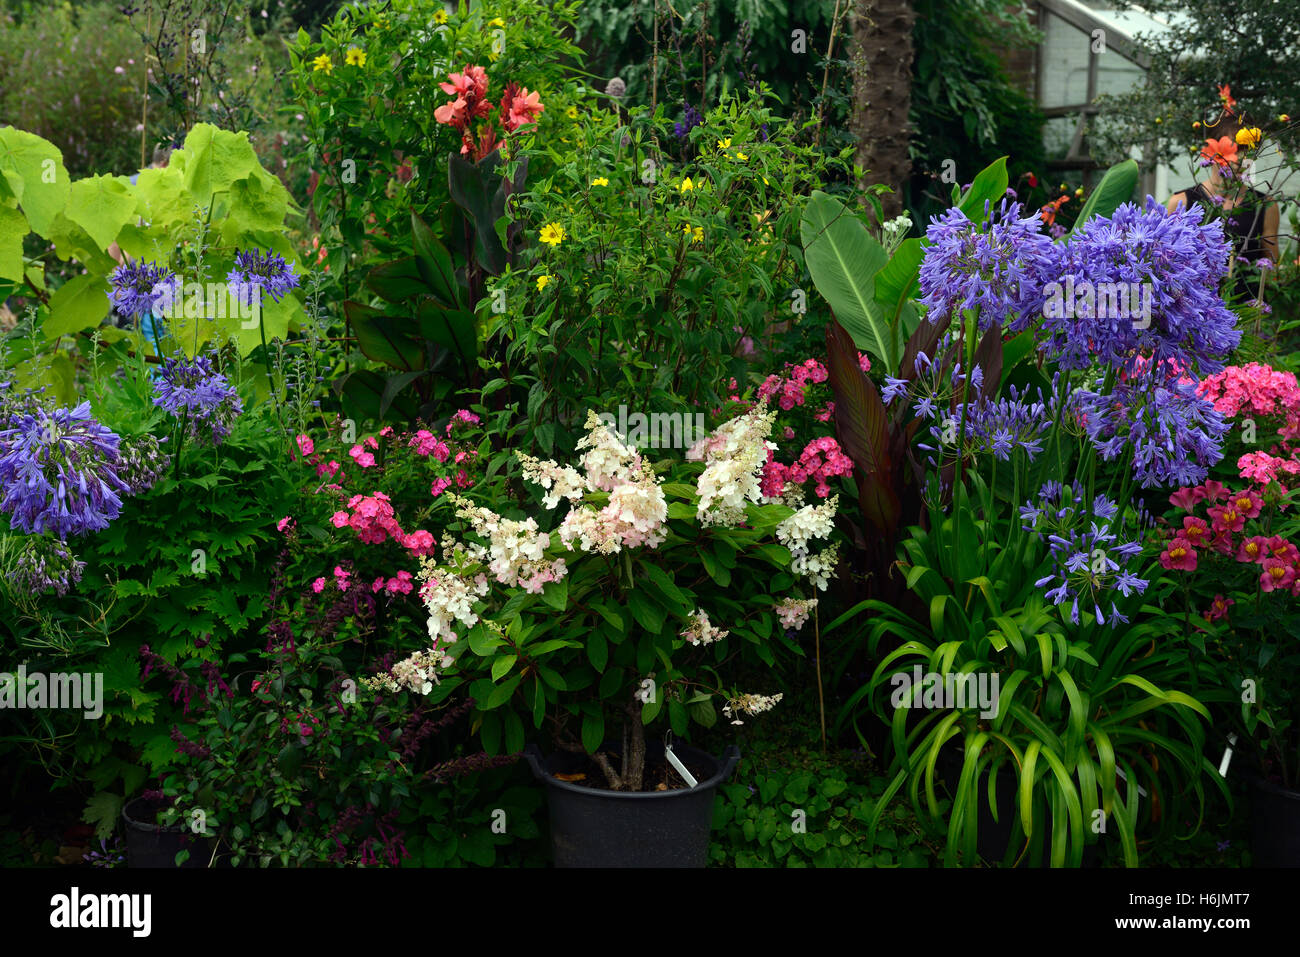 hydrangea pinky winky agapanthus alstroemeria white pink blue flowers flower flowering mix mixed planting scheme - Stock Image